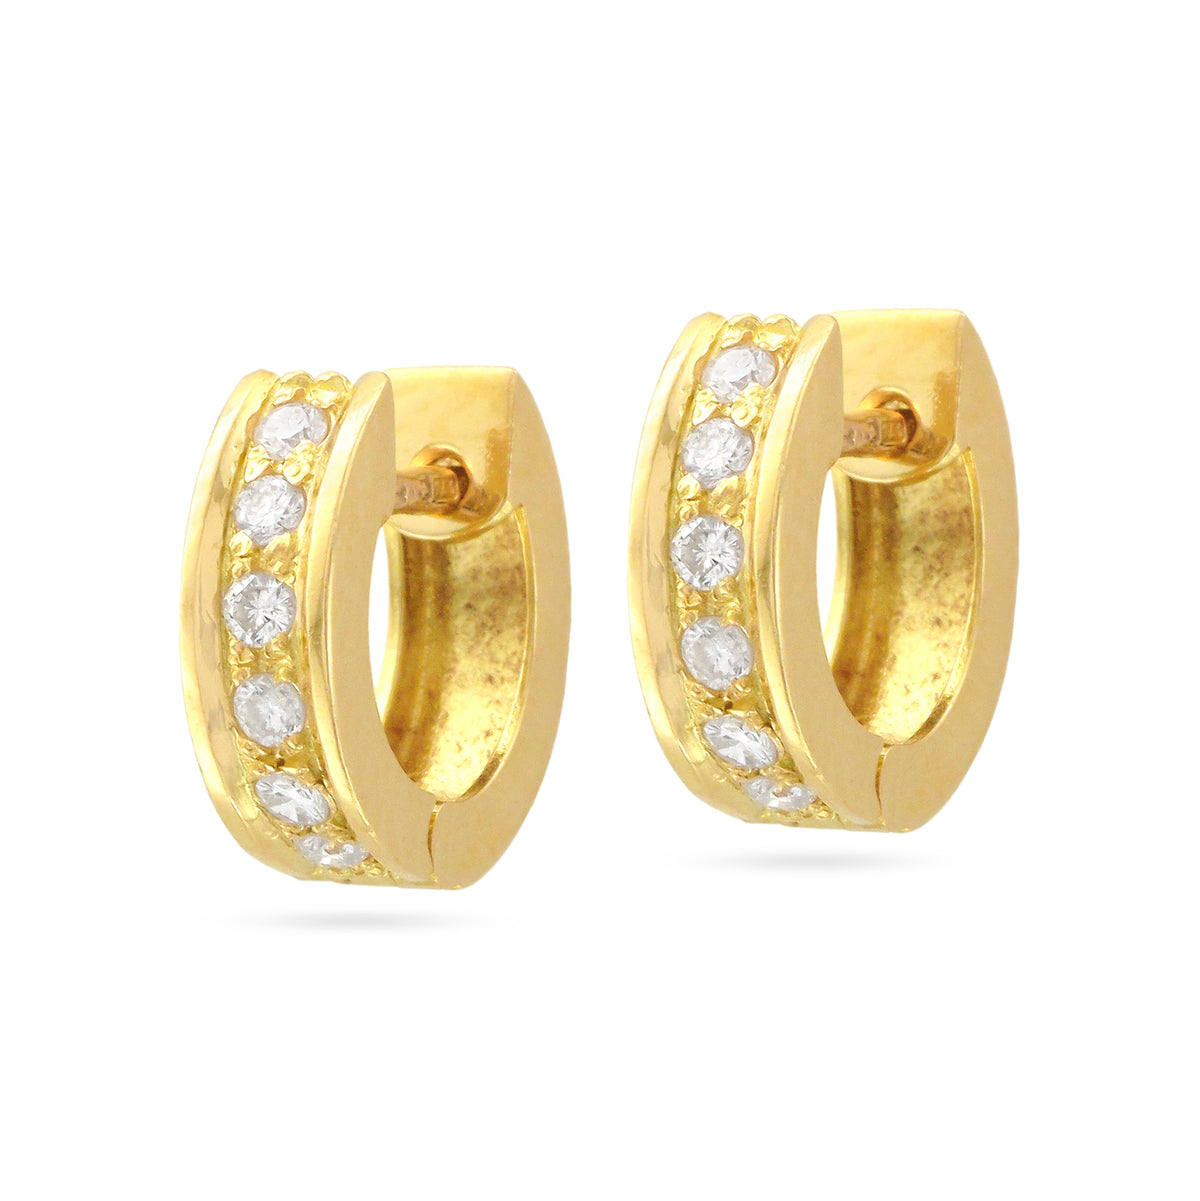 Vintage 18ct Yellow Gold Diamond Hoop Earrings